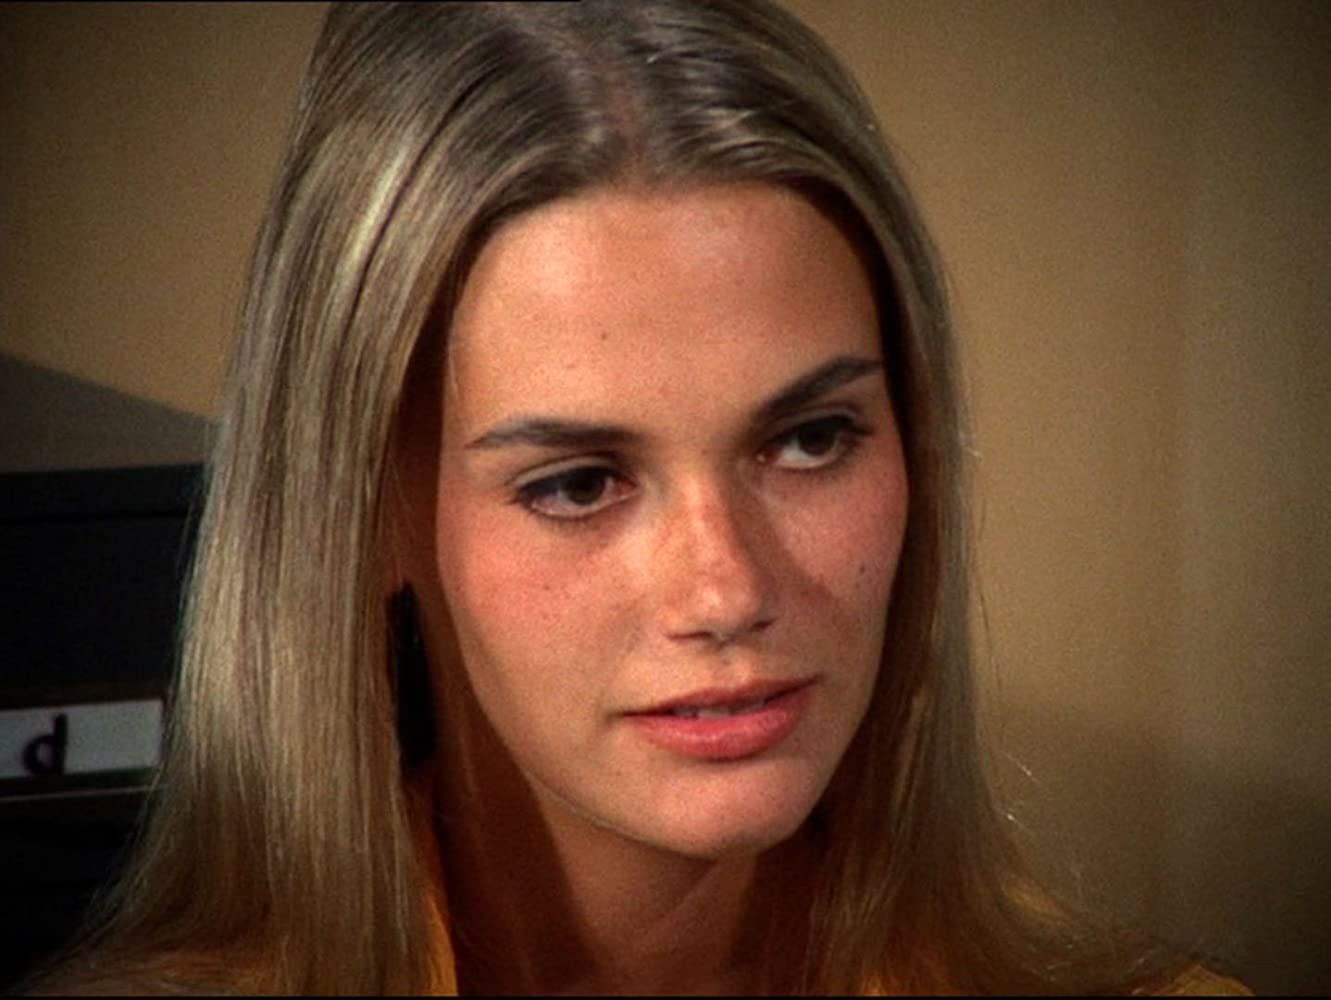 Peggy Lipton in The Mod Squad 1968